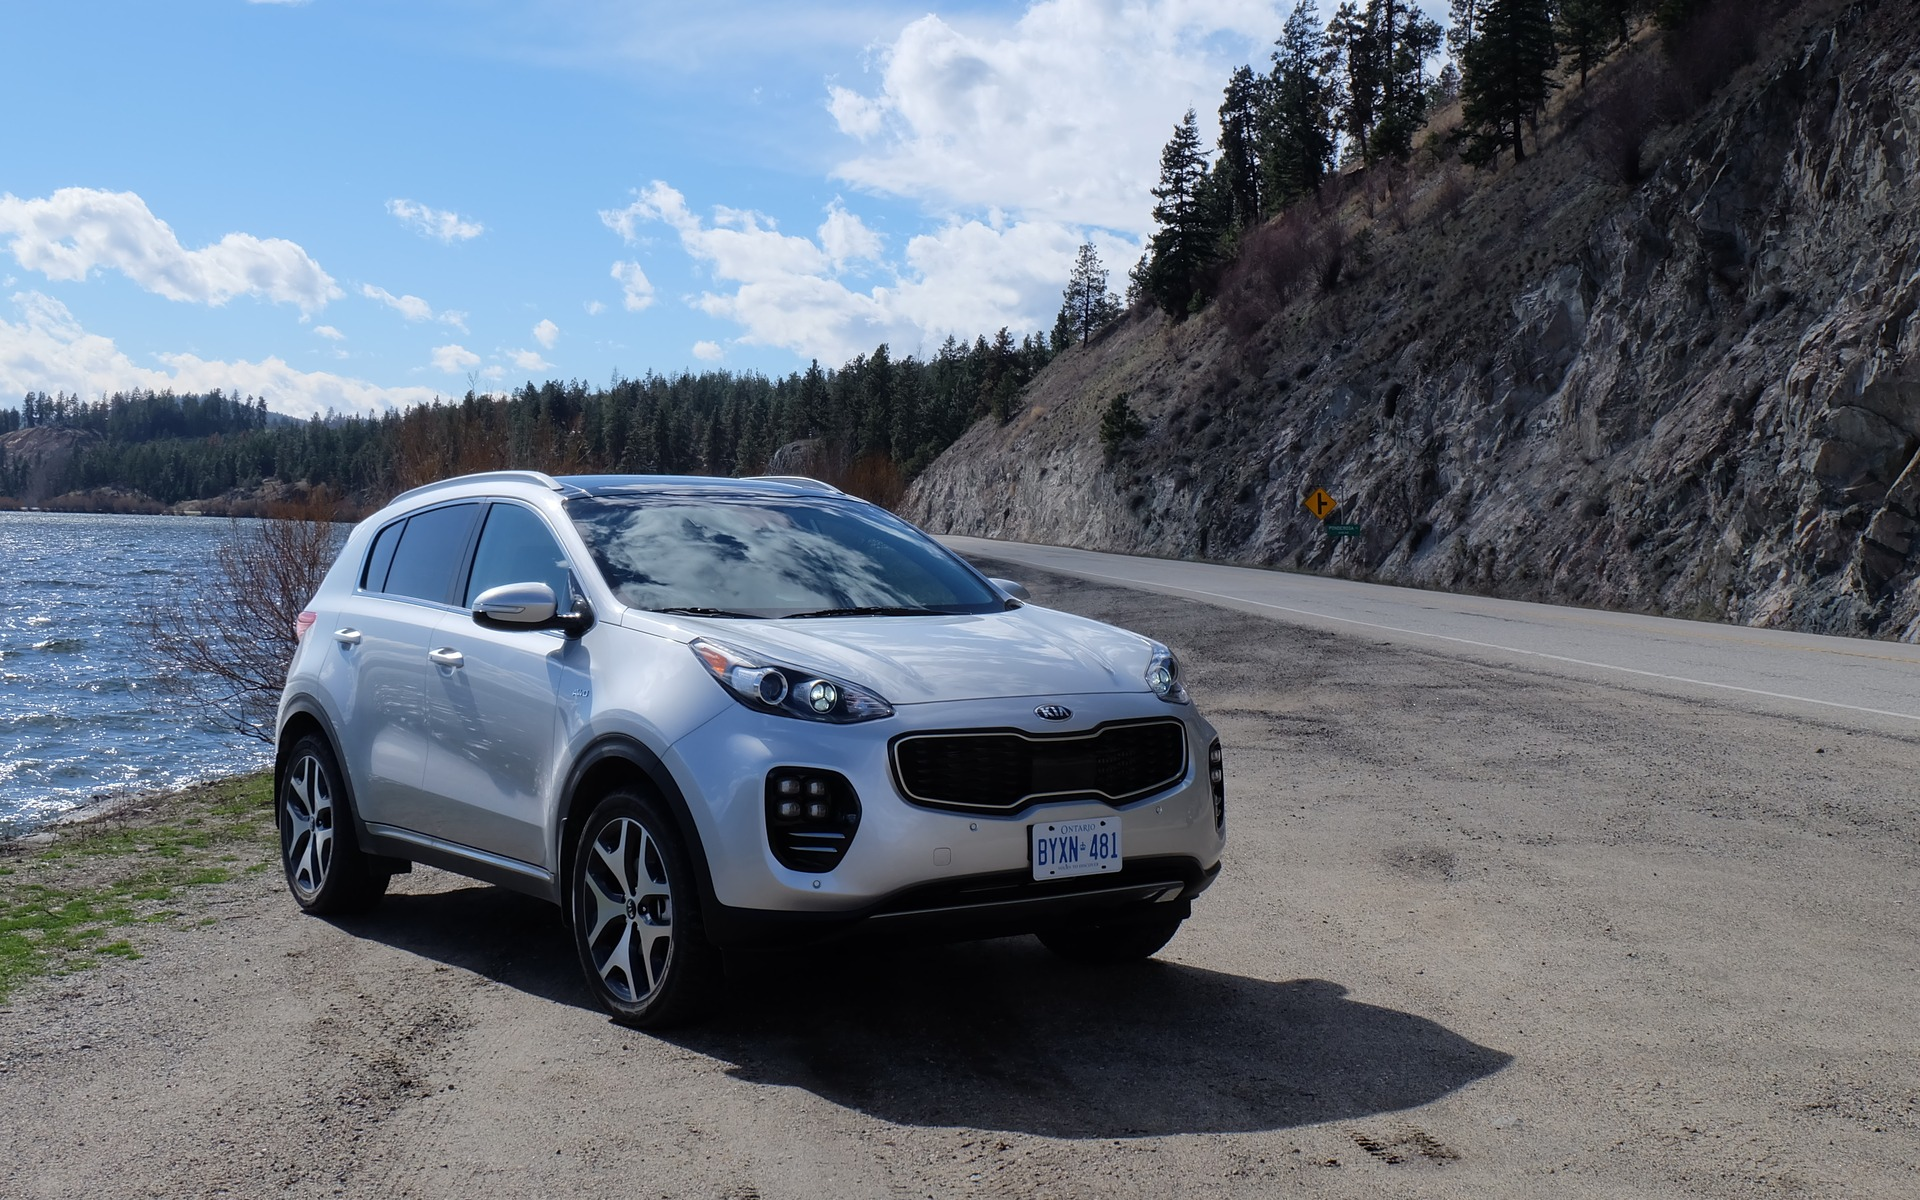 The 2017 Kia Sportage, pictured here in its SX version.